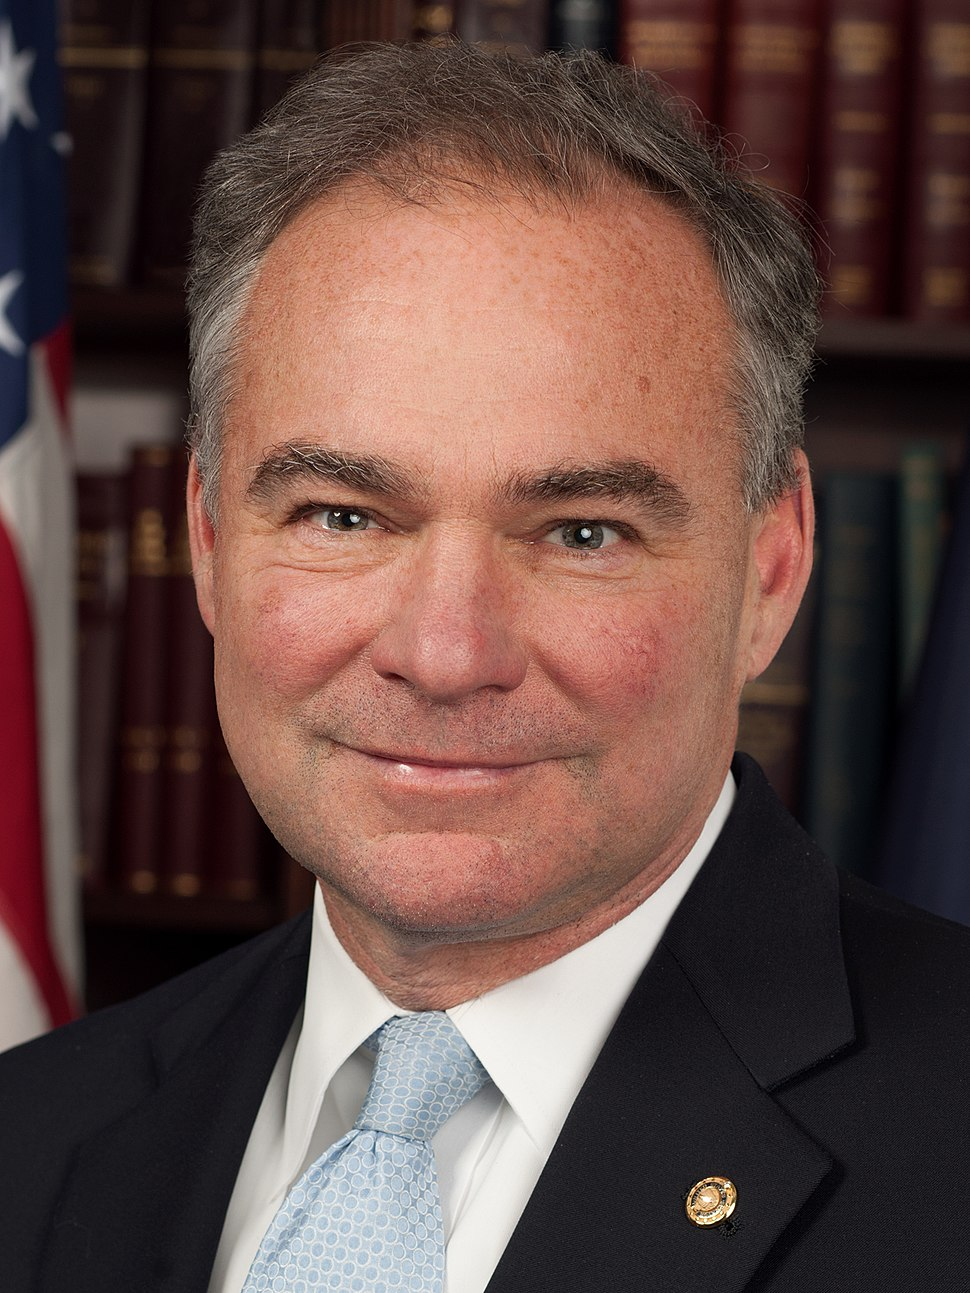 Tim Kaine, official 113th Congress photo portrait (cropped)